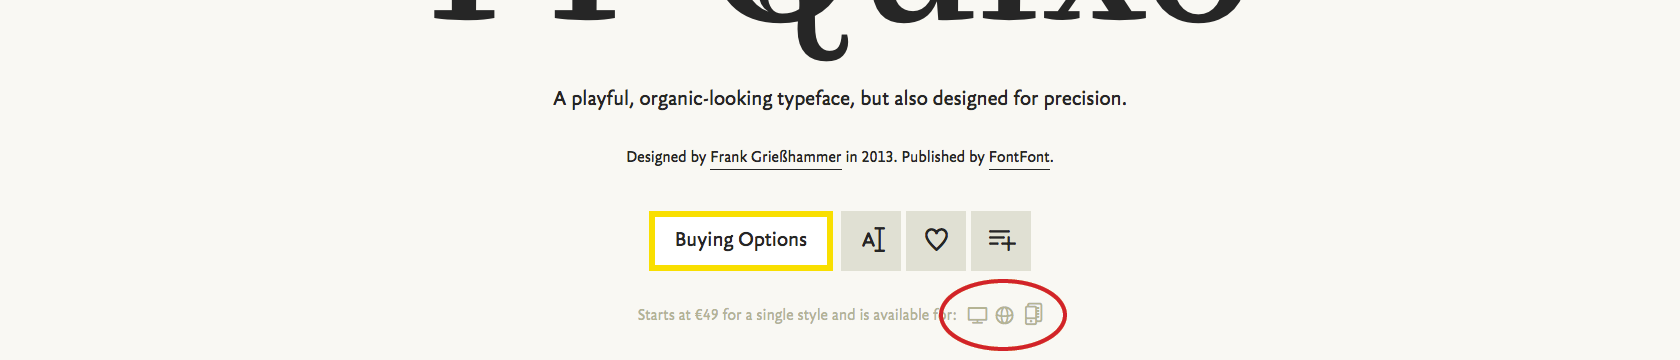 The icons on the line just below the Buy button give a quick overview of which licenses and formats are available.